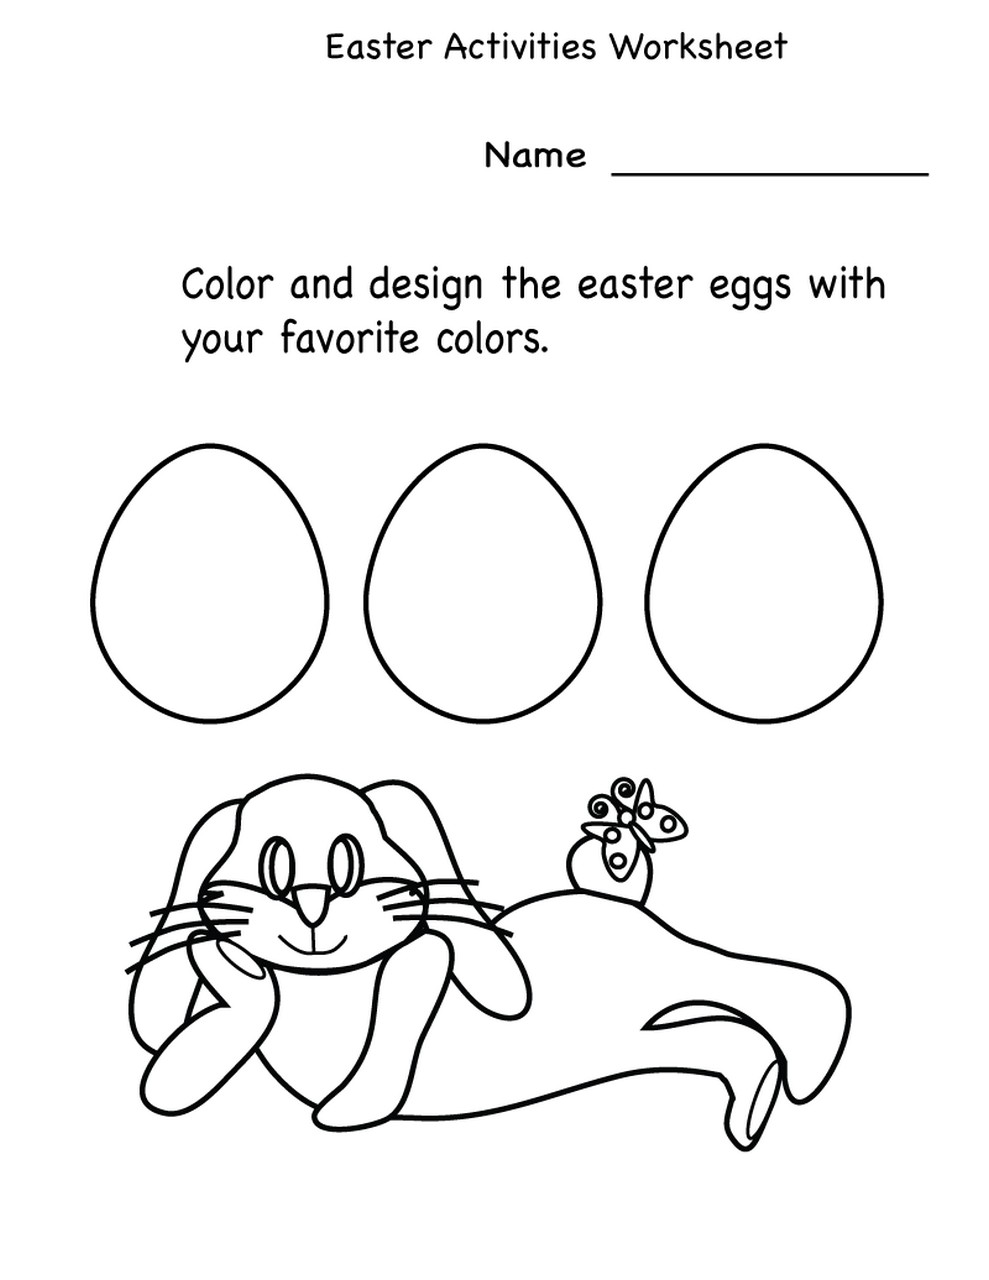 worksheets for kindergarten fun